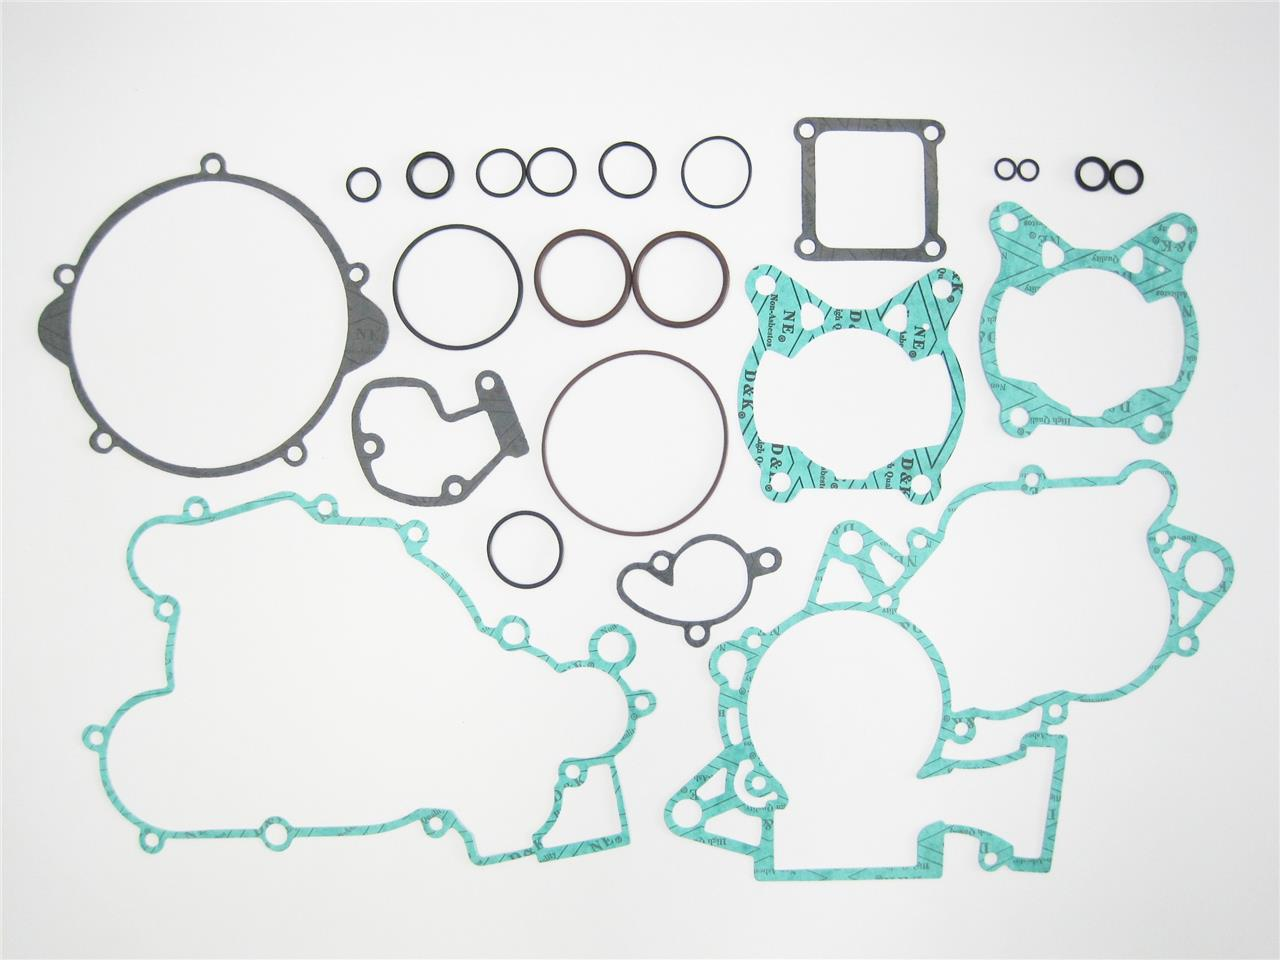 Motorcycle Parts Accessories From Japan Webike Diagram Of Suzuki 2004 Rm65 Engine Cover Tecnium Complete Gasket Set Ktm Husqvarna